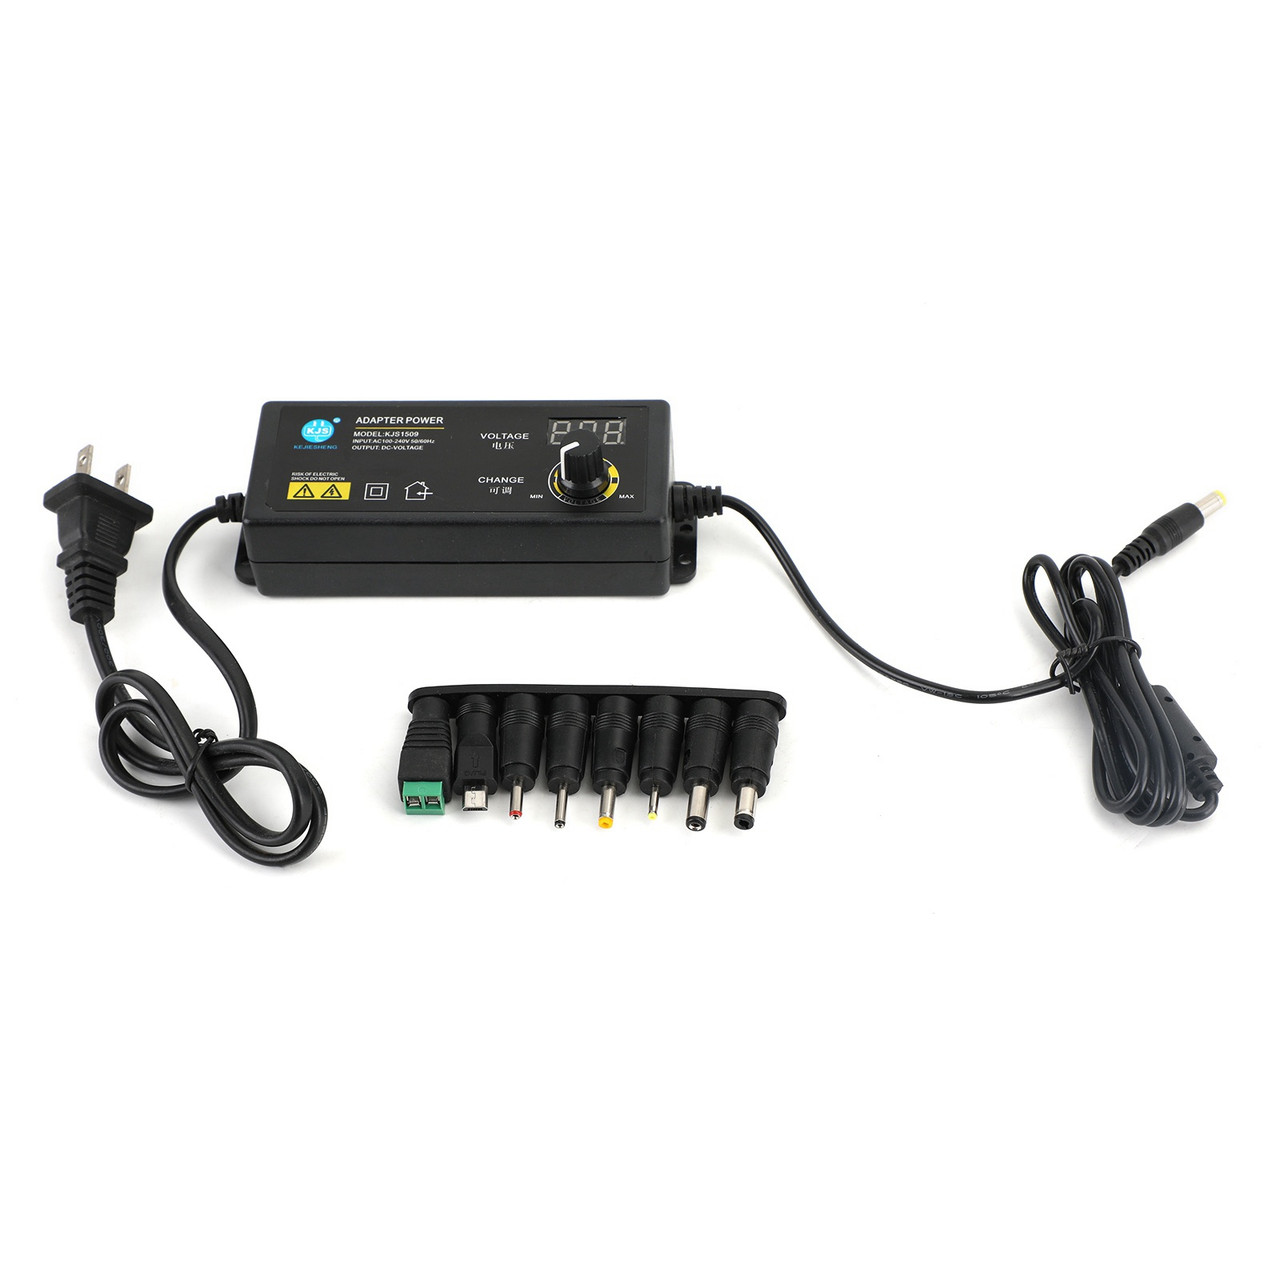 AC/DC 3V-24V Electrical Power Supply Adapter Charger Voltage Adjustable 1.5A